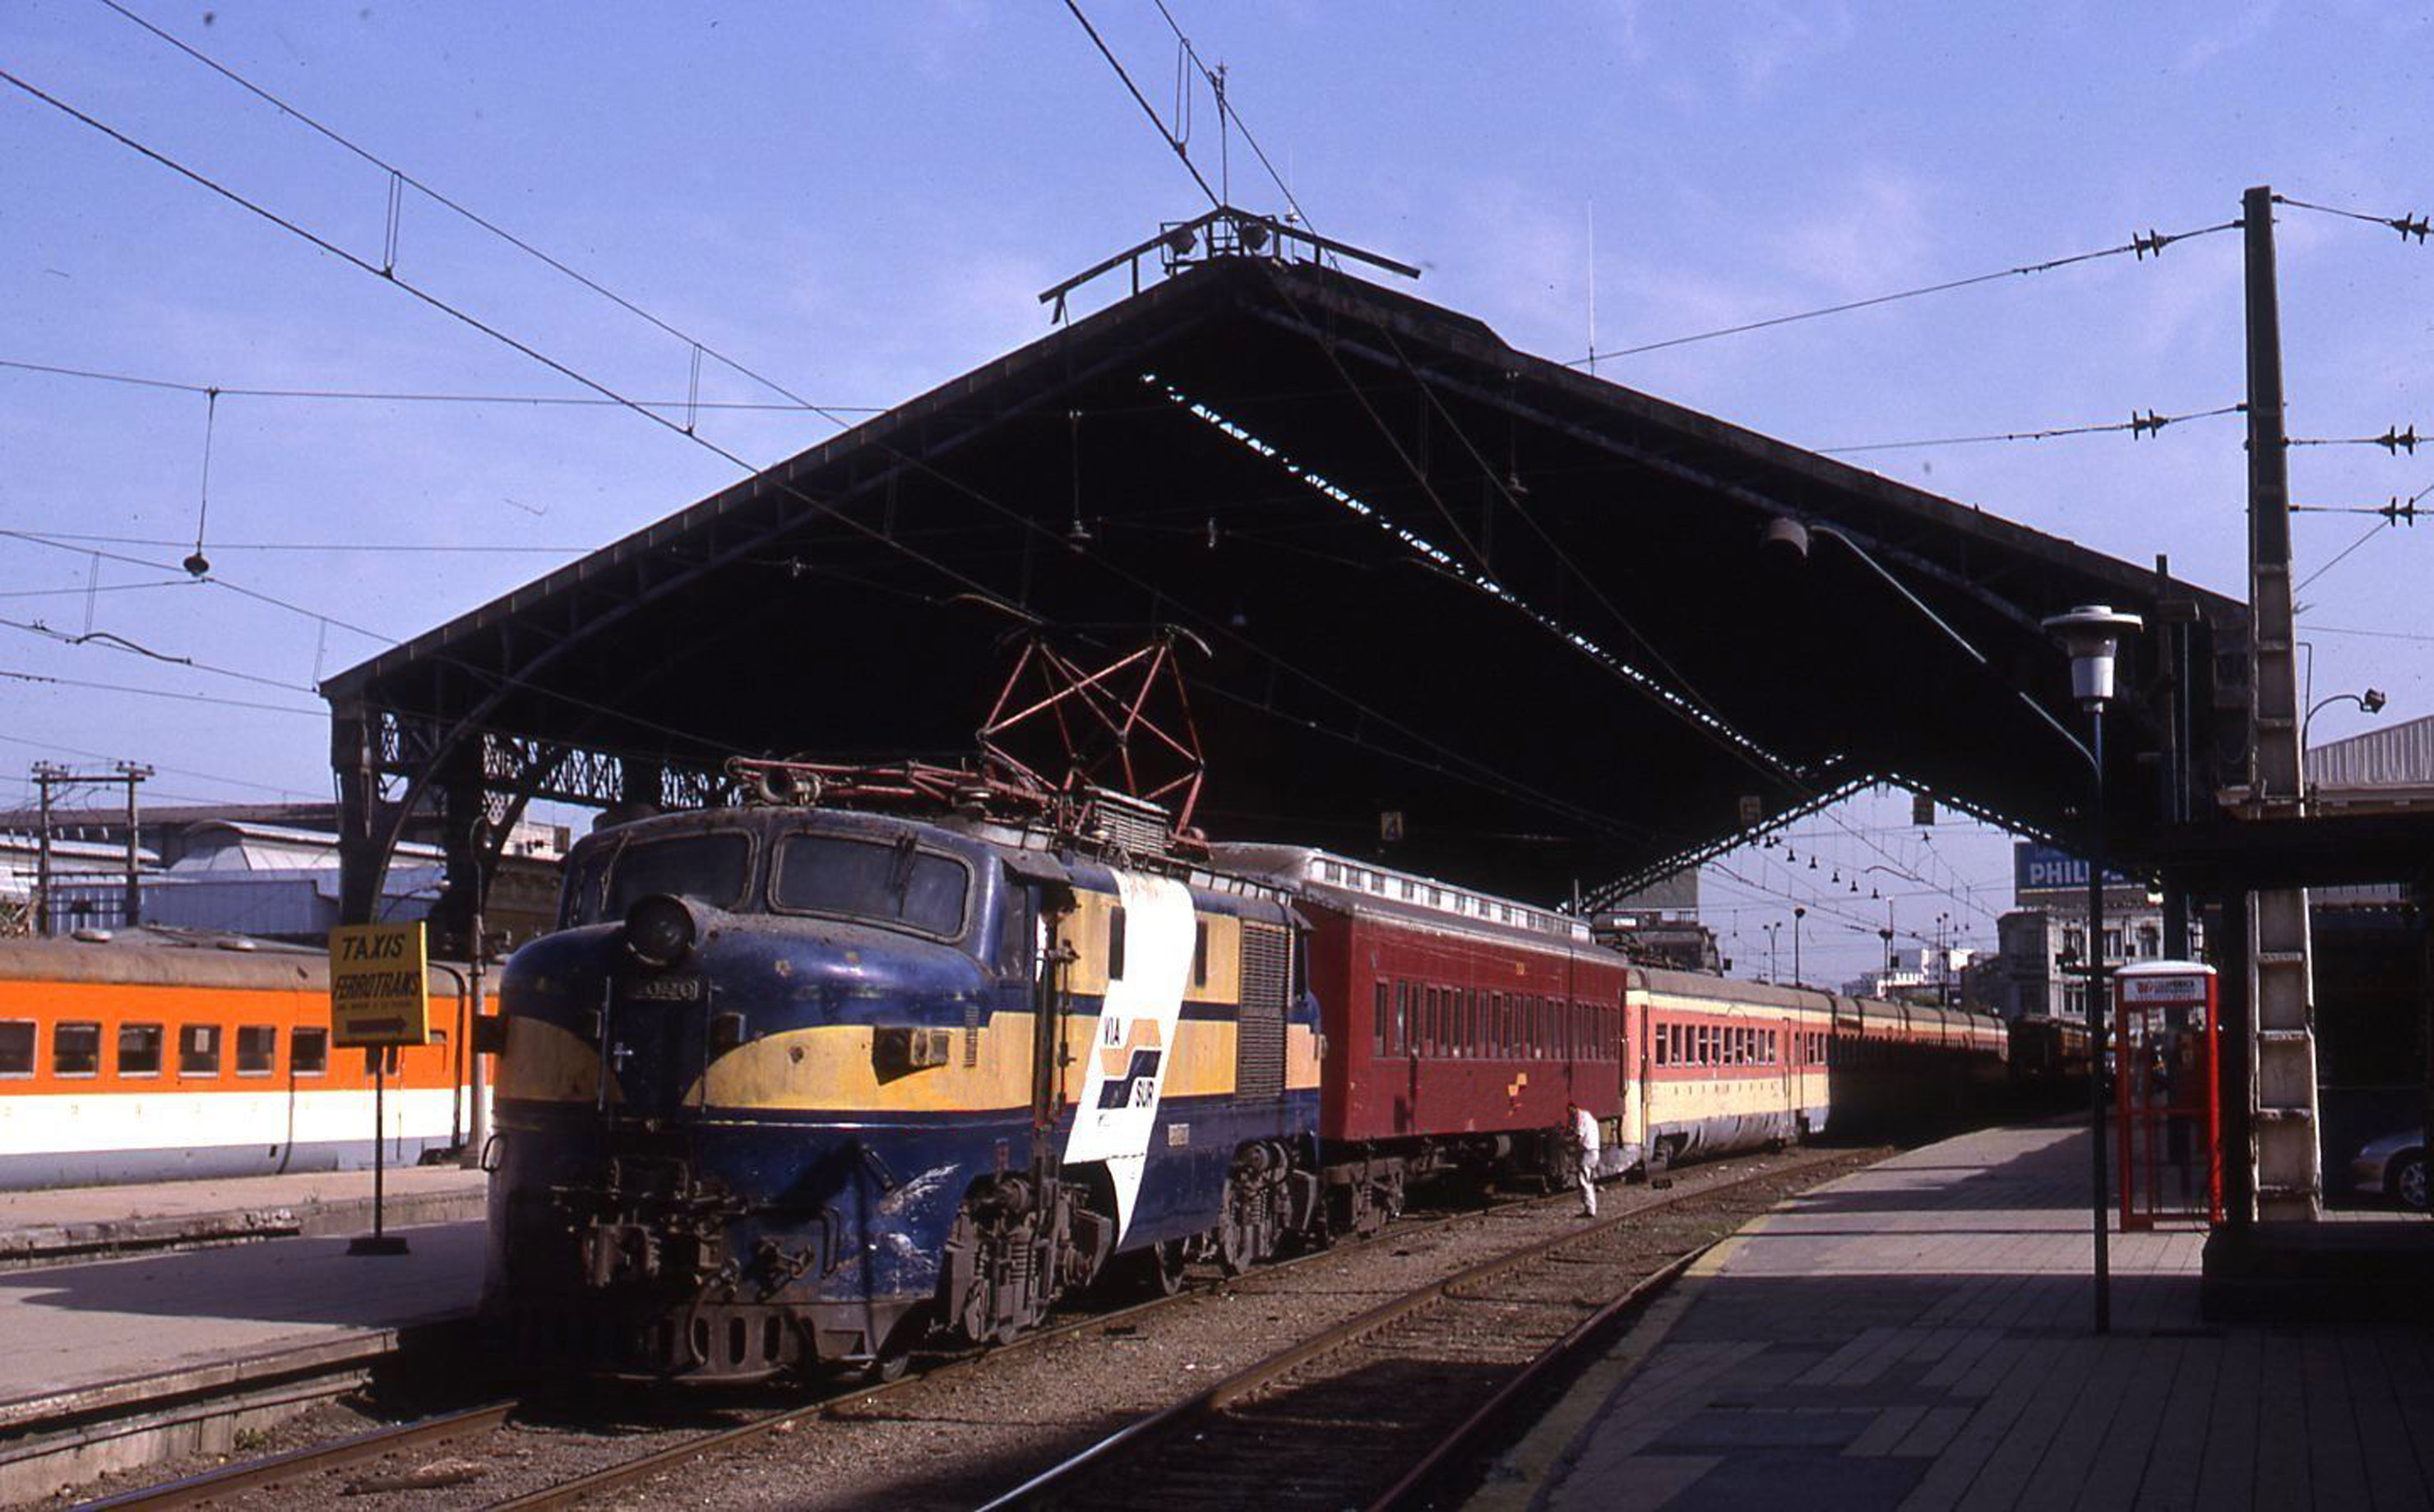 Enterreno - Fotos históricas de chile - fotos antiguas de Chile - Estación Central de Santiago en 1988